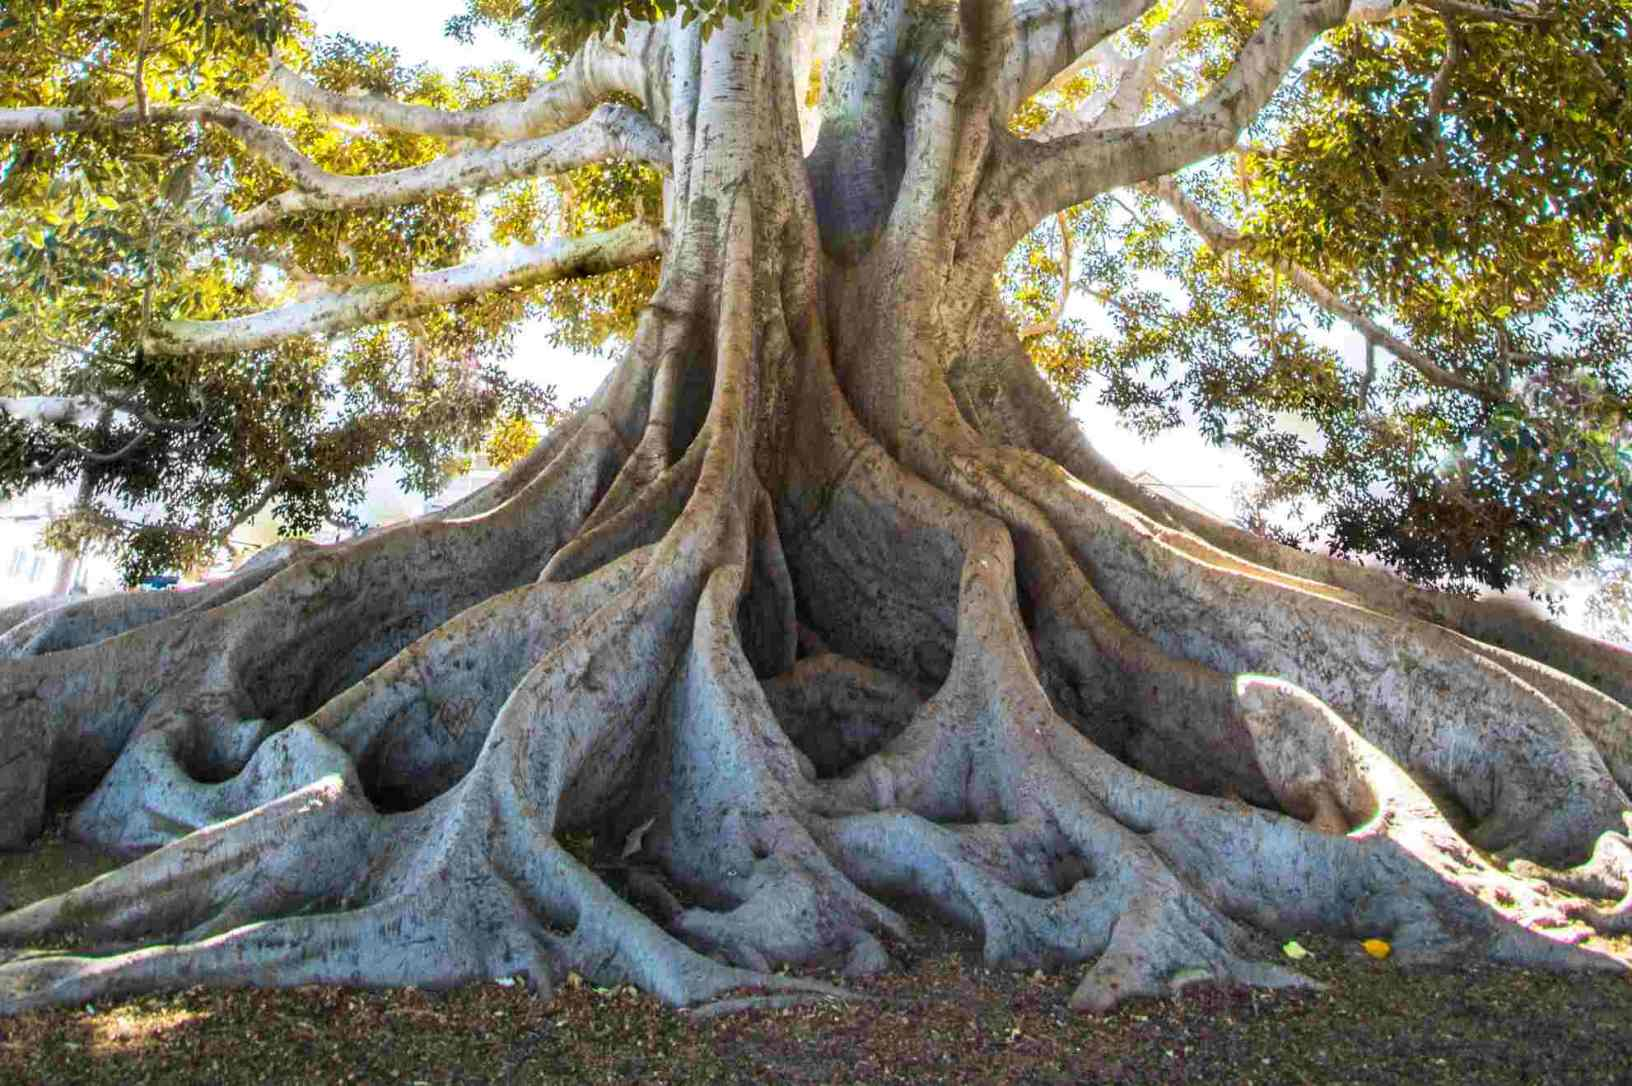 an image of tree roots